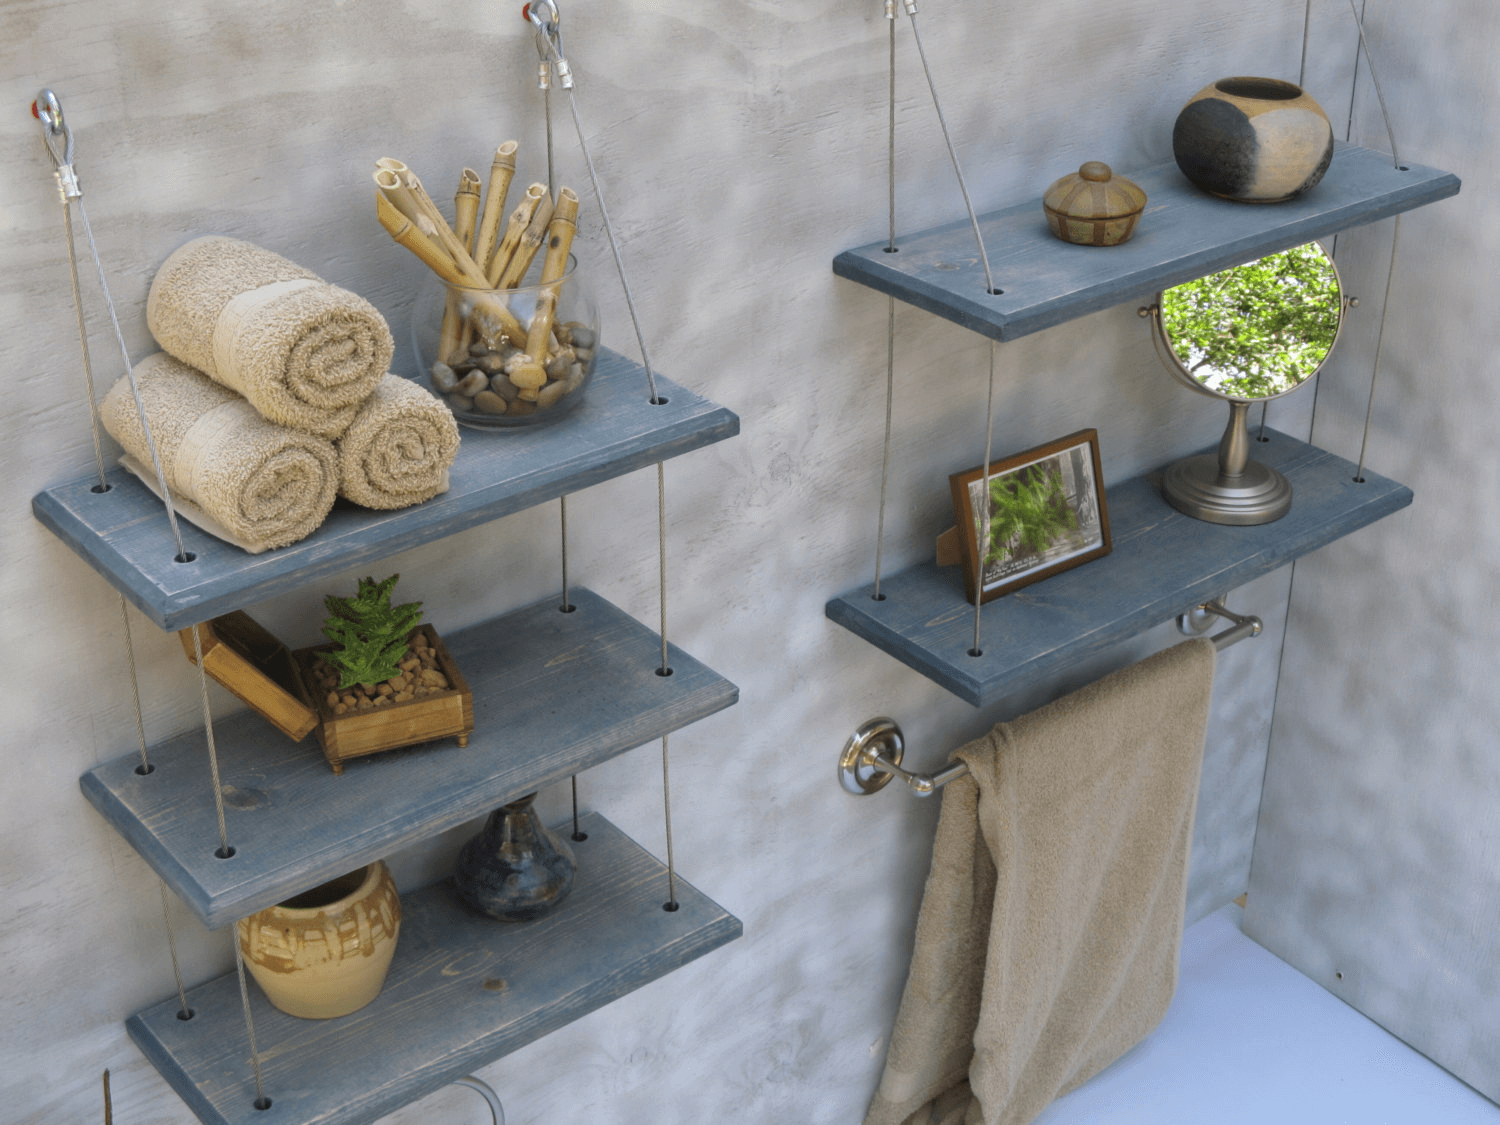 Bathroom wall decor with wood shelves